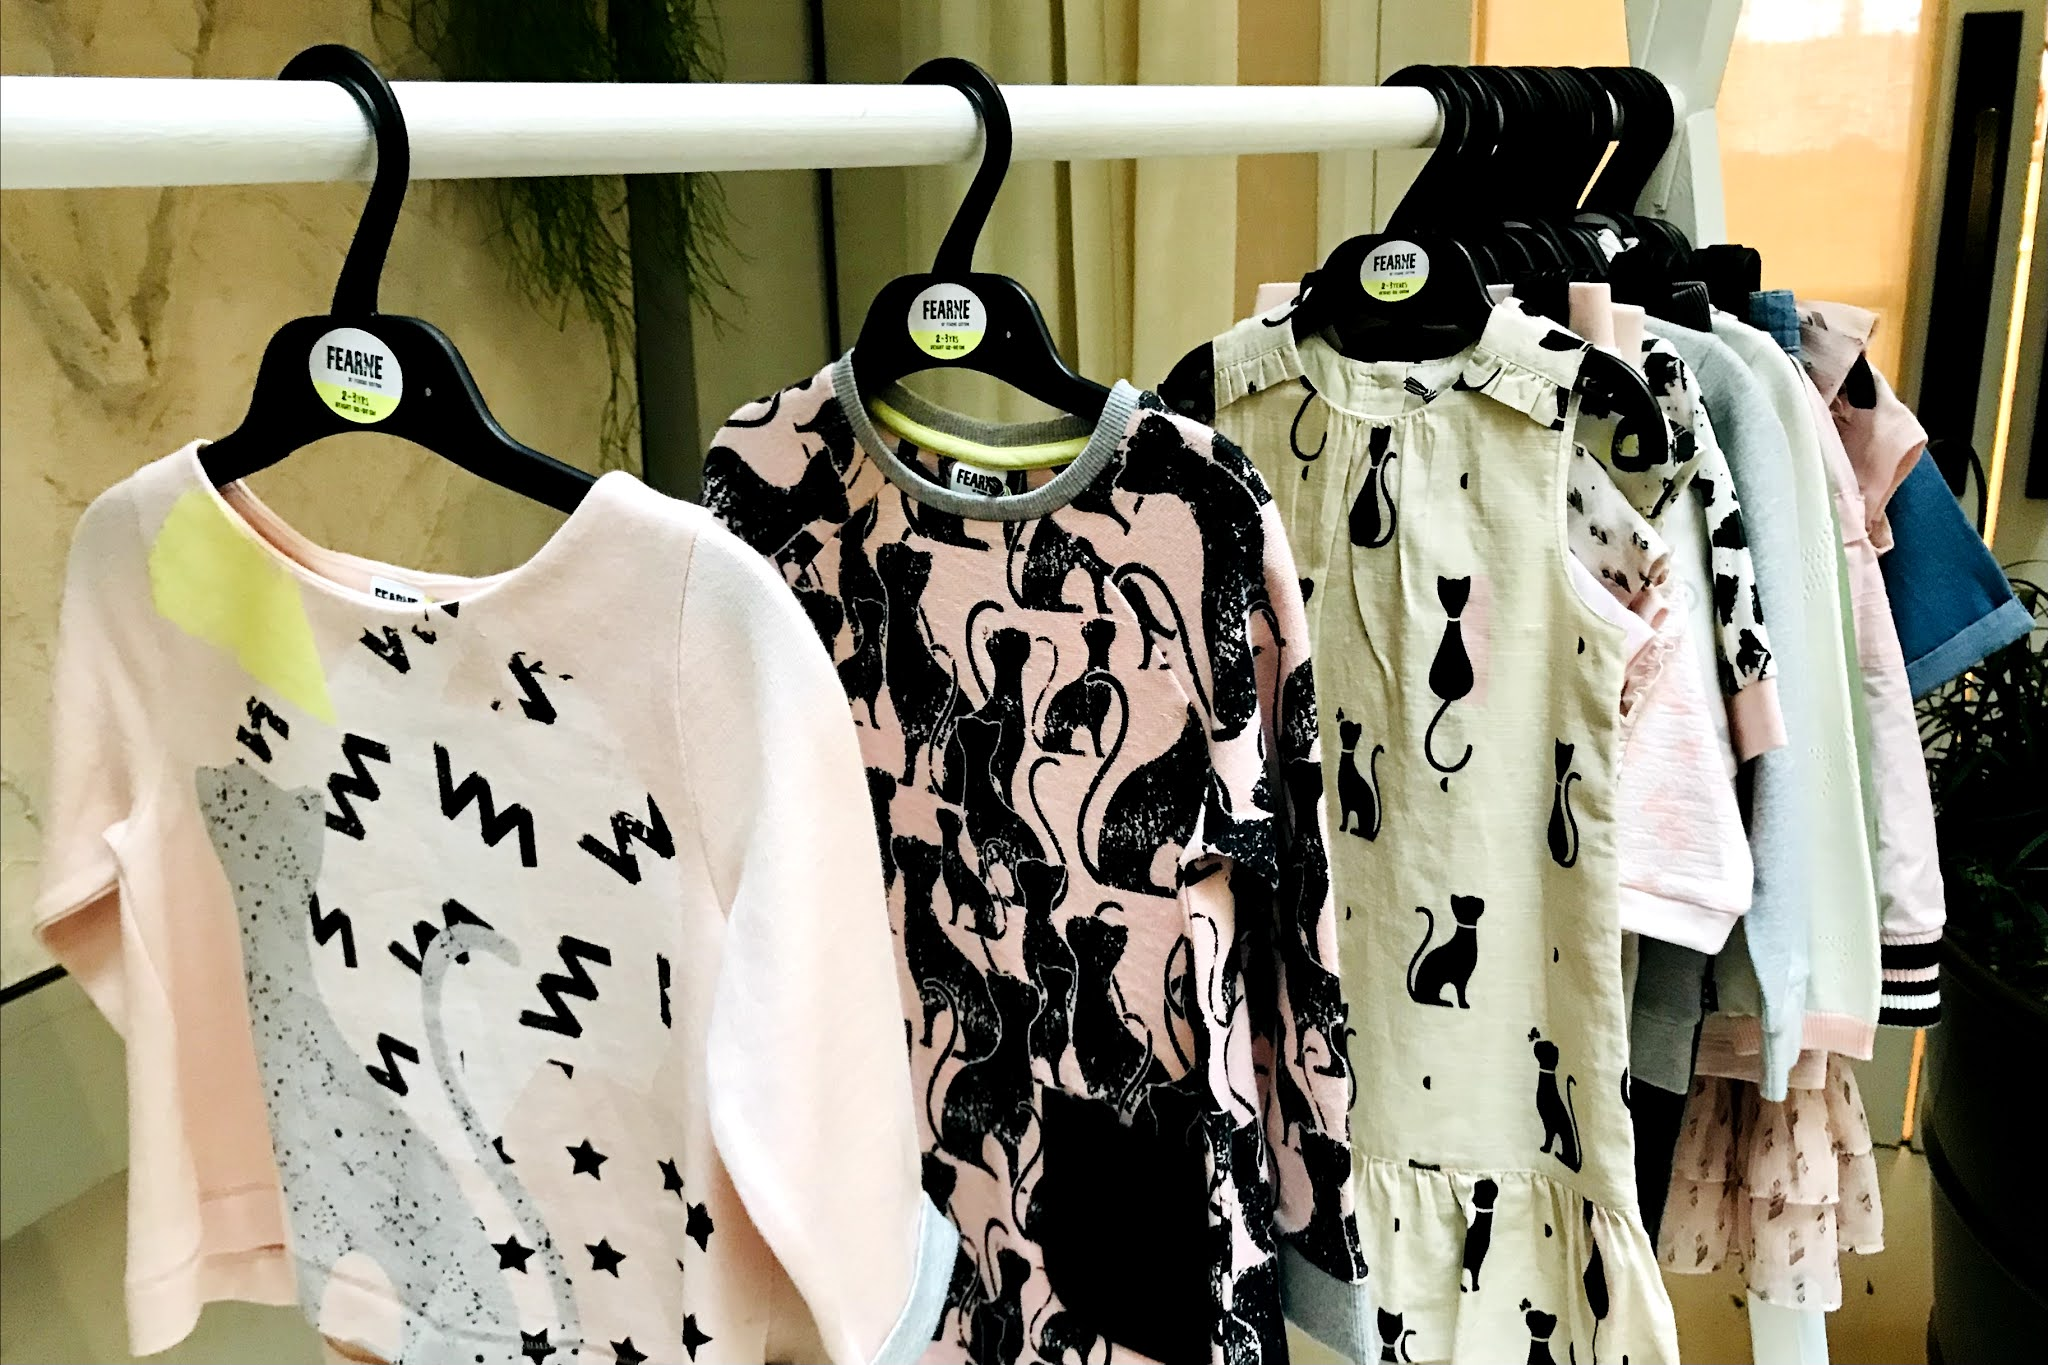 A clothing rail with great value children's clothes on